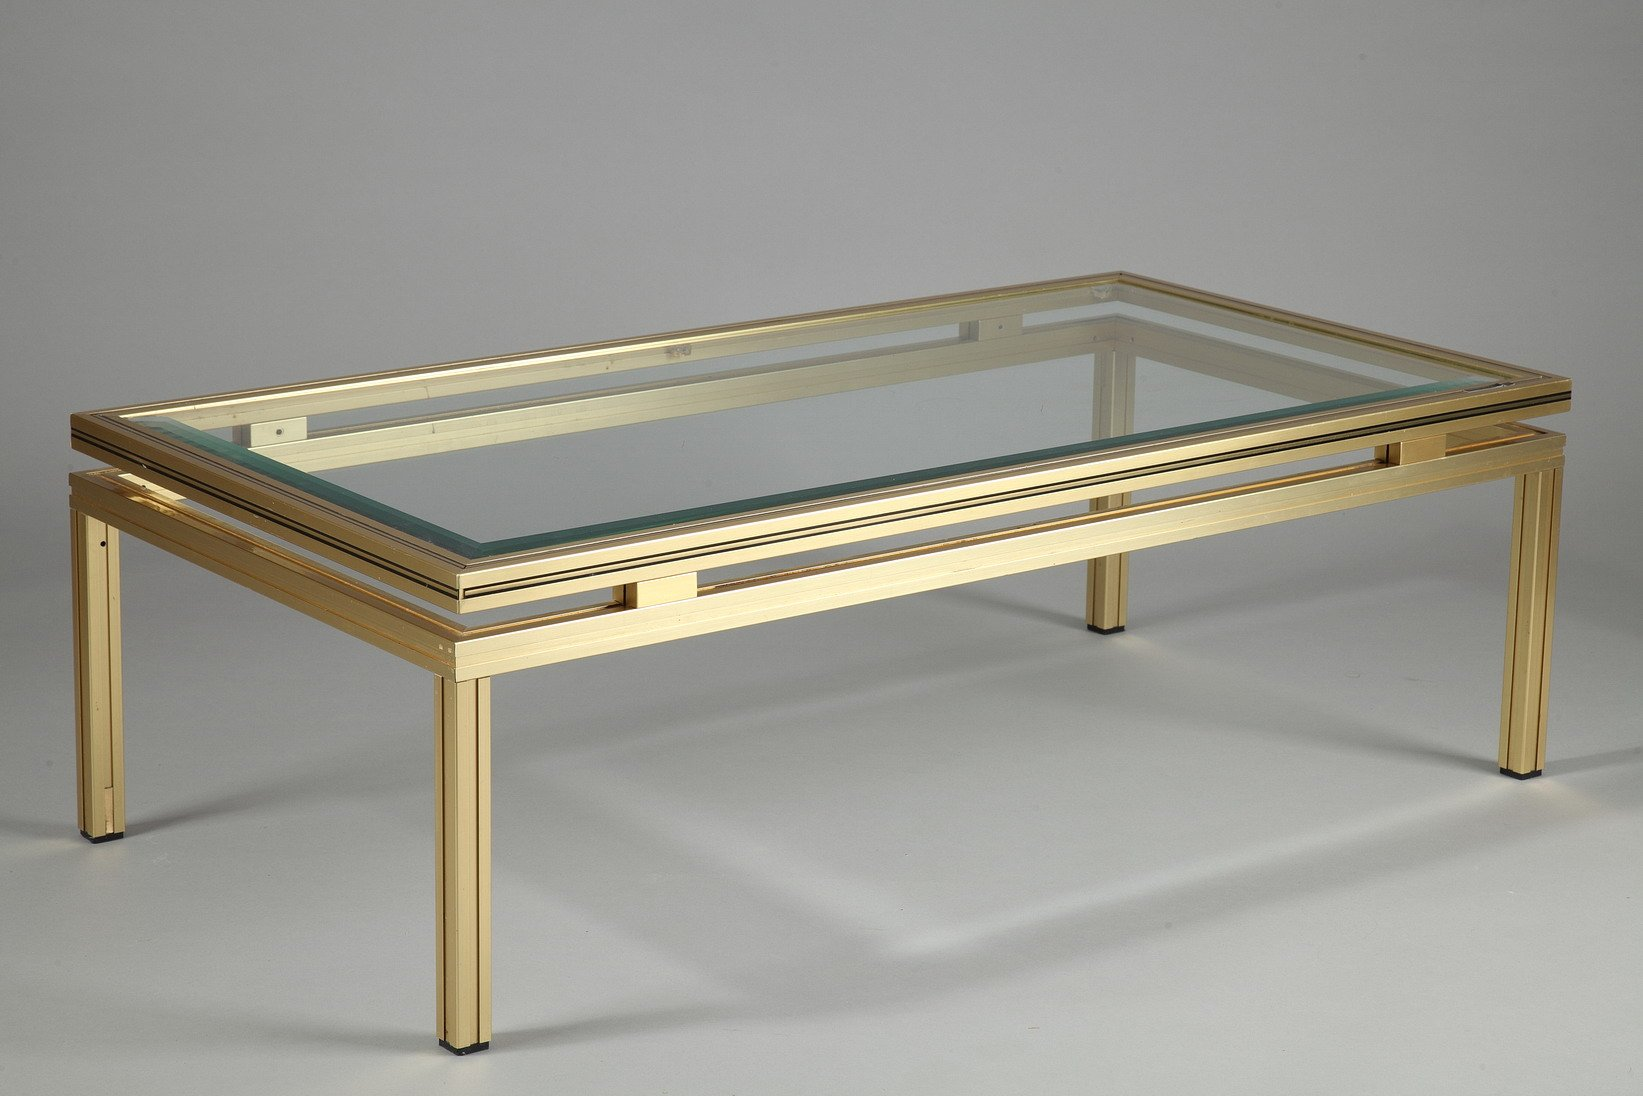 Rectangular Coffee Table In Brass Plated Aluminum By Pierre Vandel For Sale At Pamono